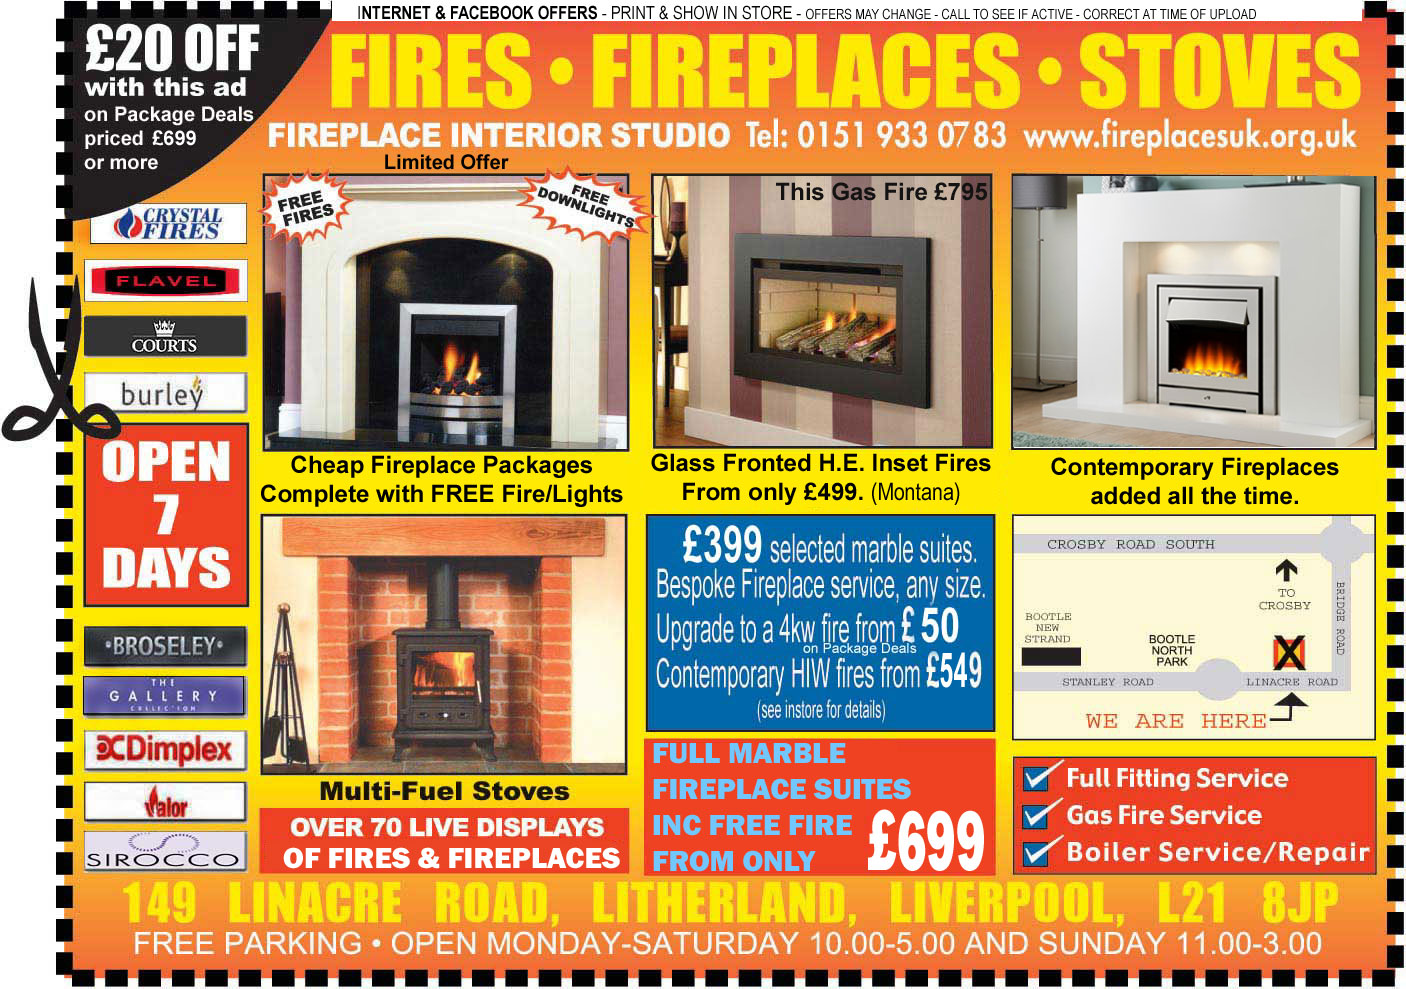 Liverpool Fireplace Voucher